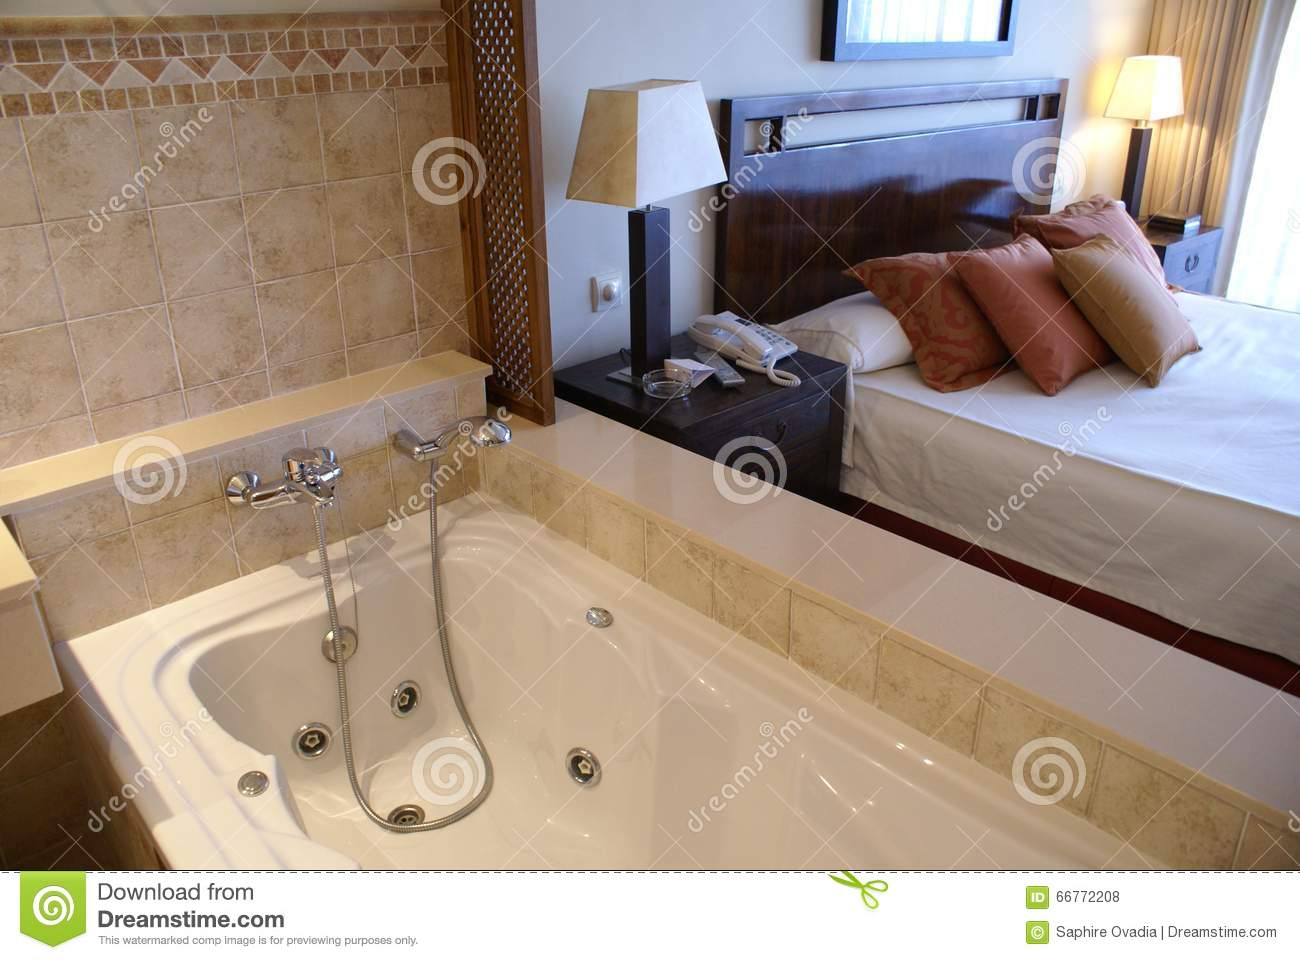 Jacuzzi. Hot Tub. Bath. Spa Stock Photo - Image of bathroom ...